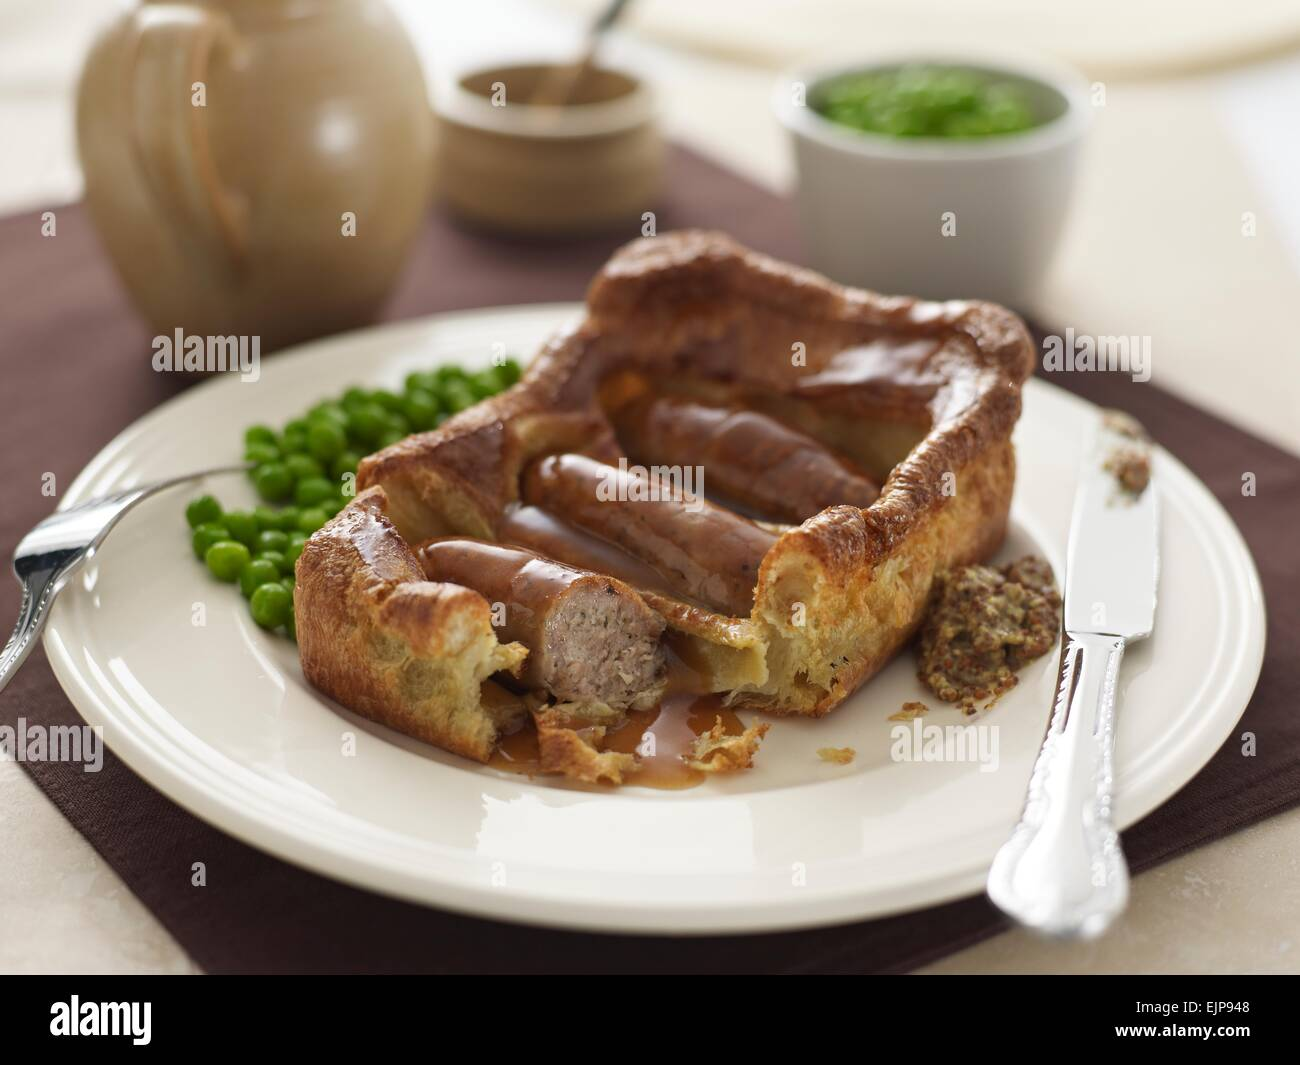 plated Meal of Toad in the hole large square Yorkshire pudding with three sausages gravy peas and whole grain mustard - Stock Image